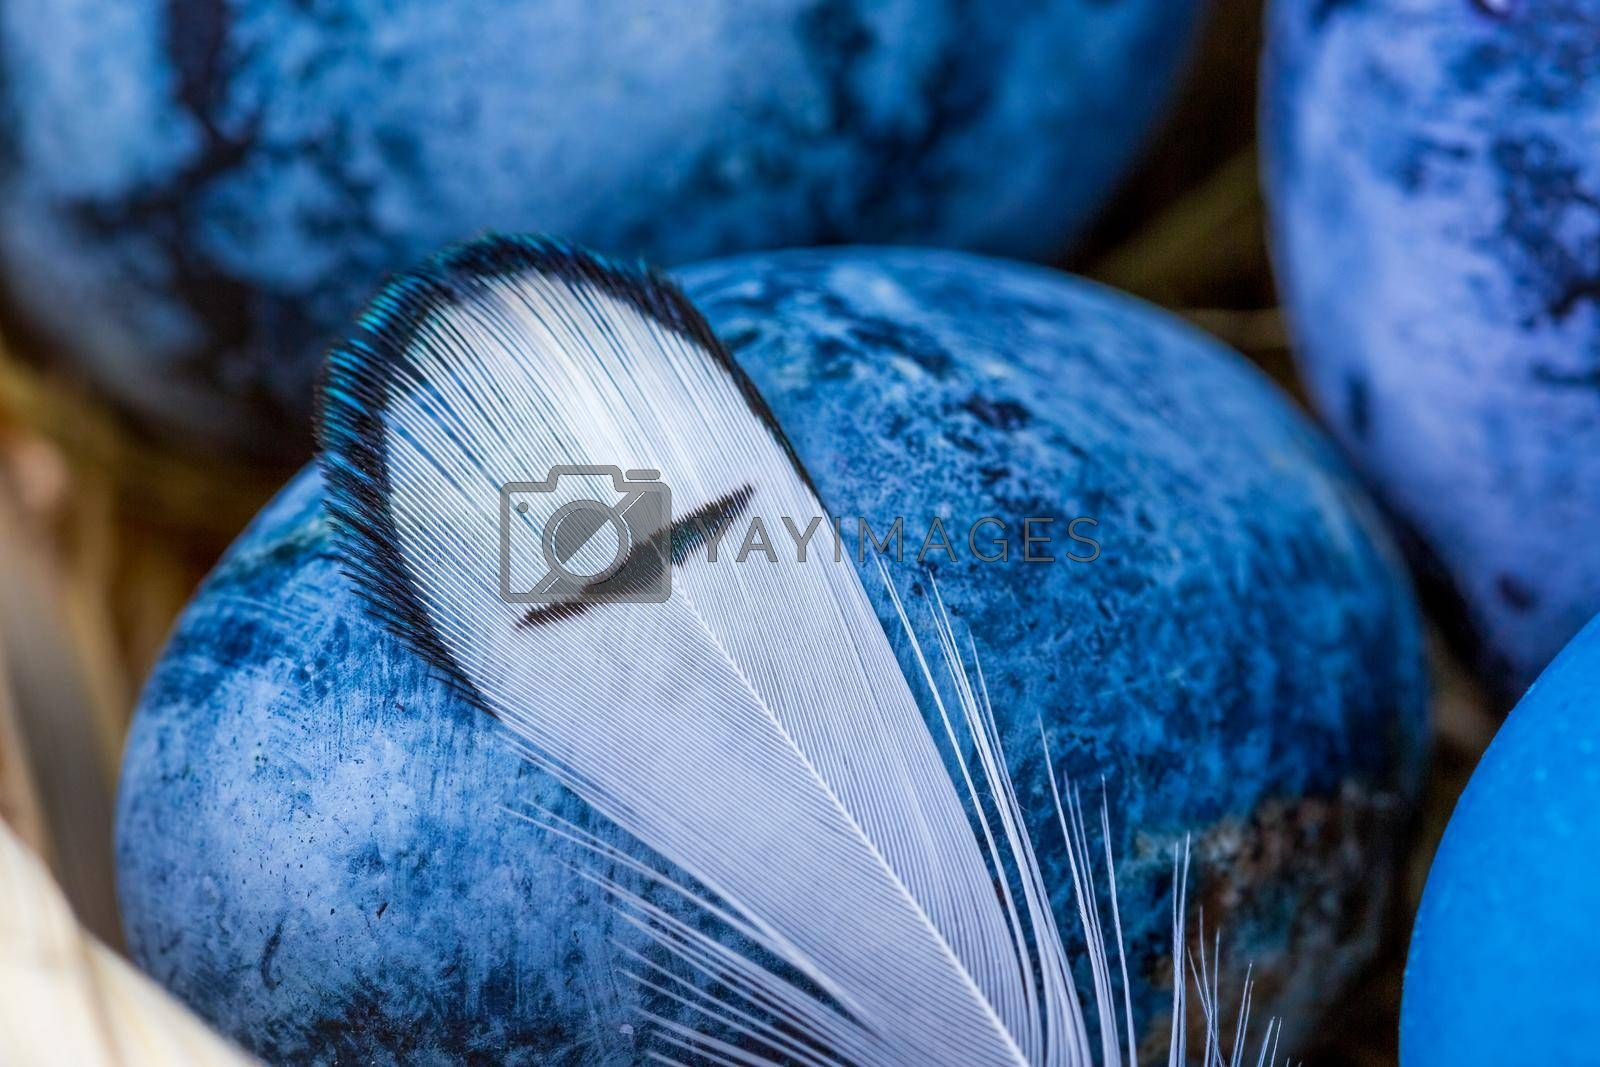 Blue Easter eggs close-up, selective focus, shallow depth of field. Concept, healthy food, spring religious holidays.